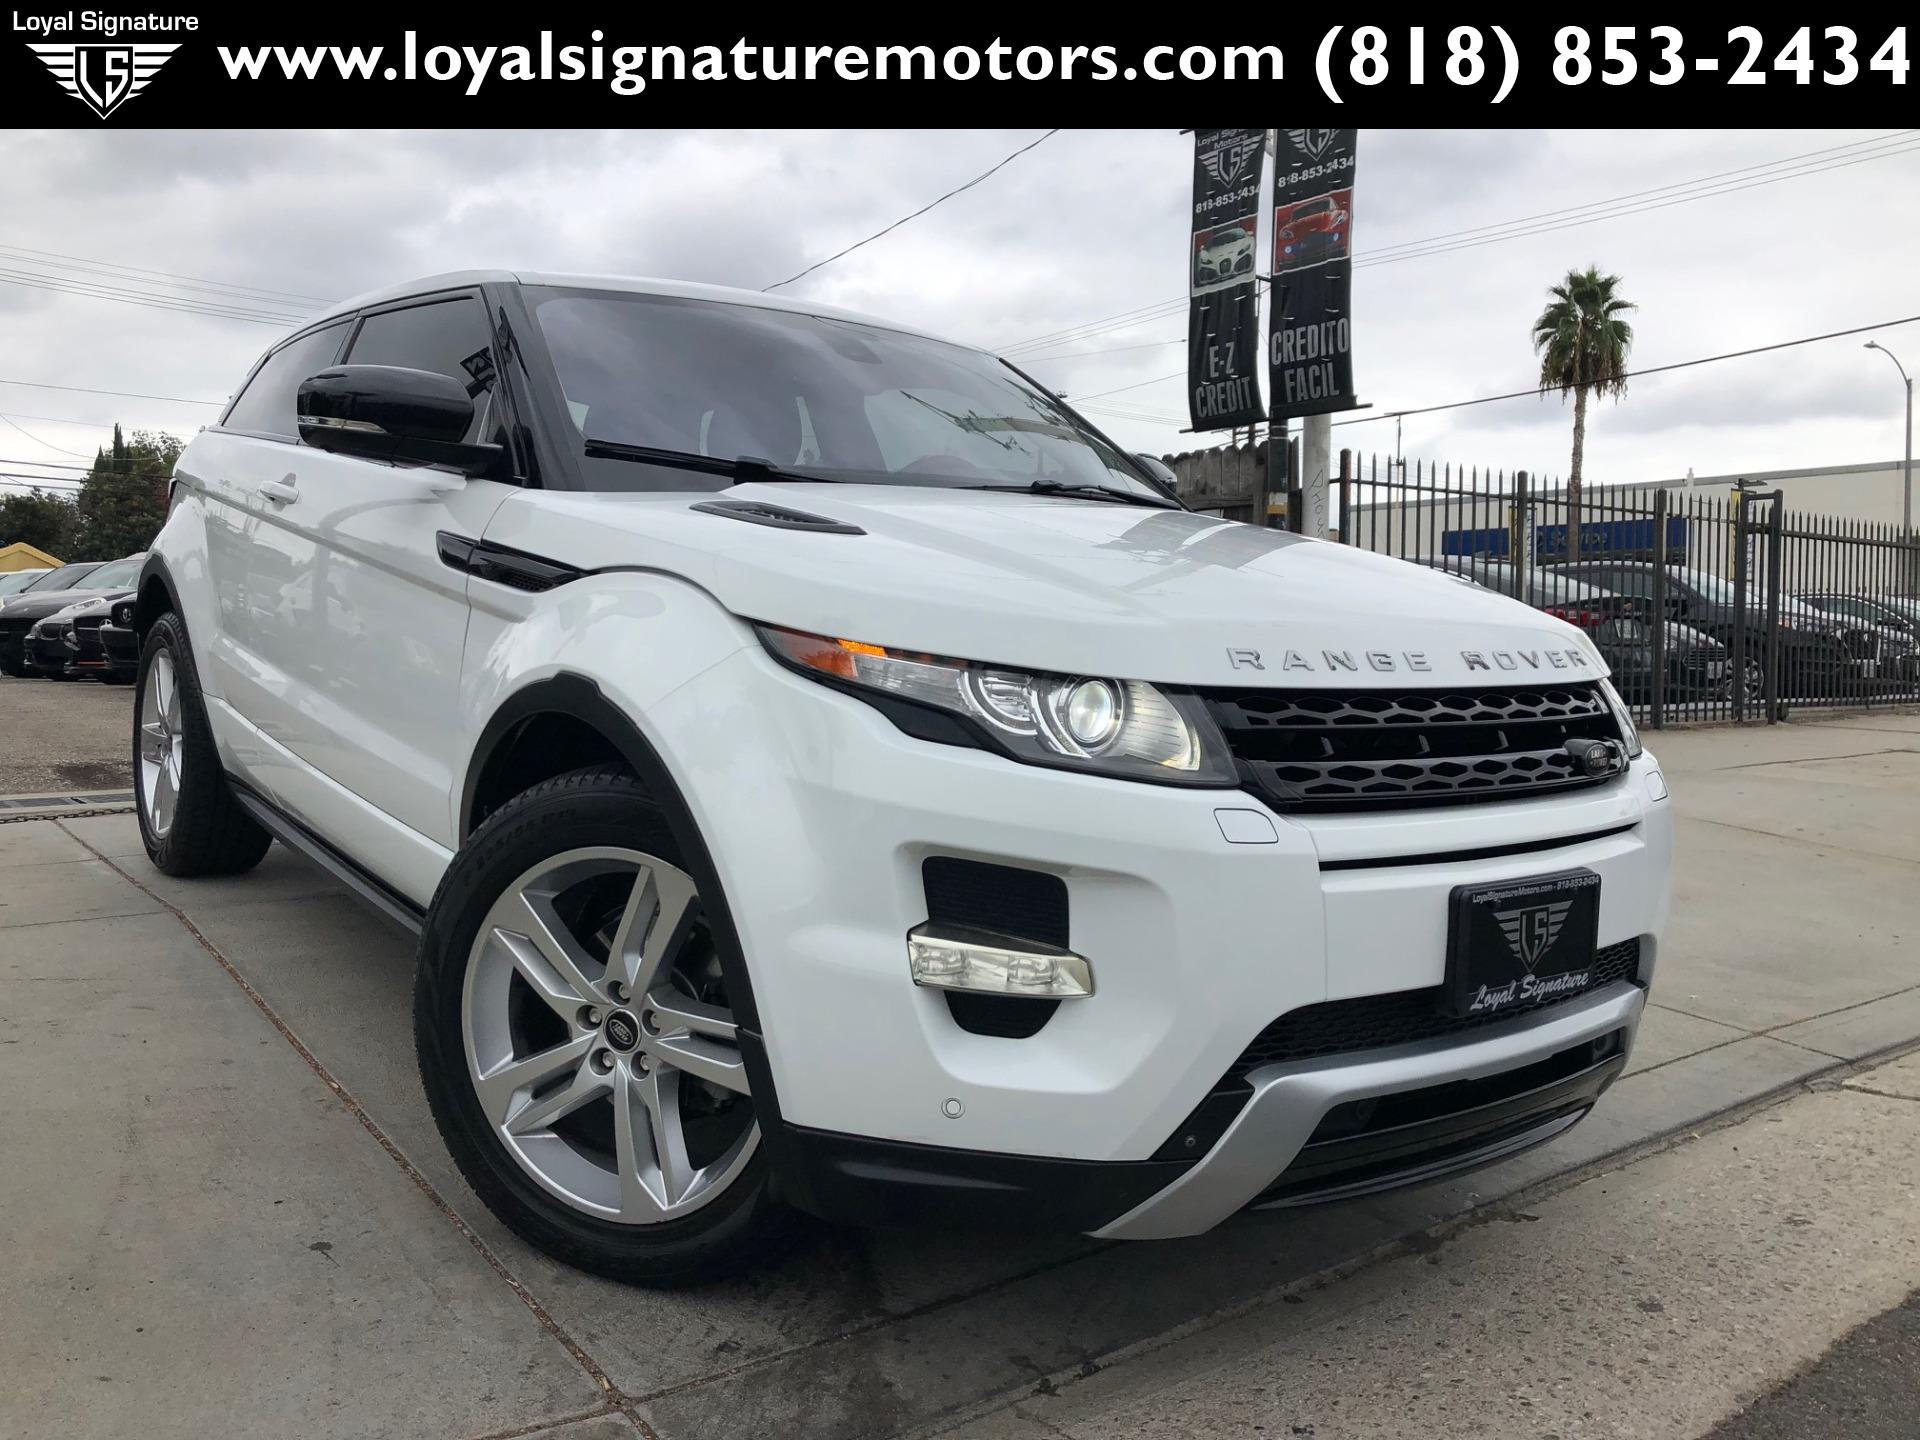 Used 2013 Land Rover Range Rover Evoque Coupe Dynamic | Van Nuys, CA